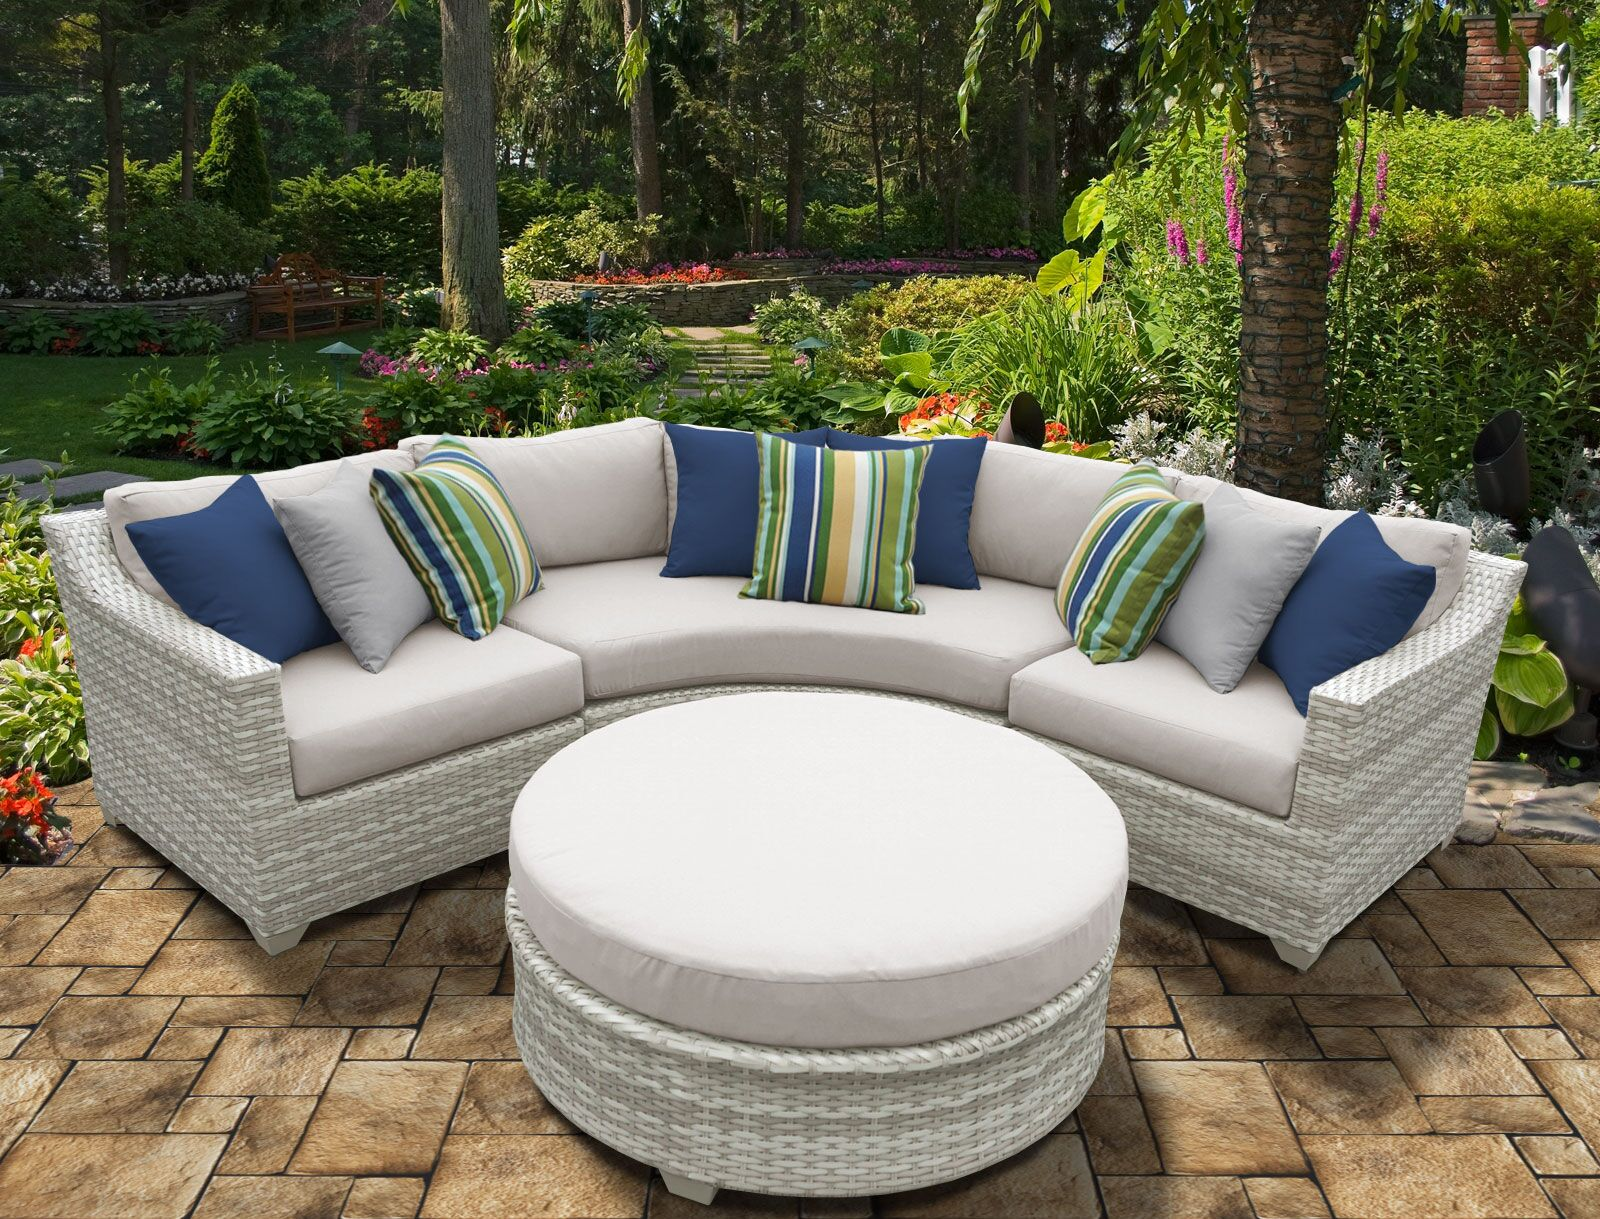 Ansonia 4 Piece Sectional Set with Cushions Color: Beige